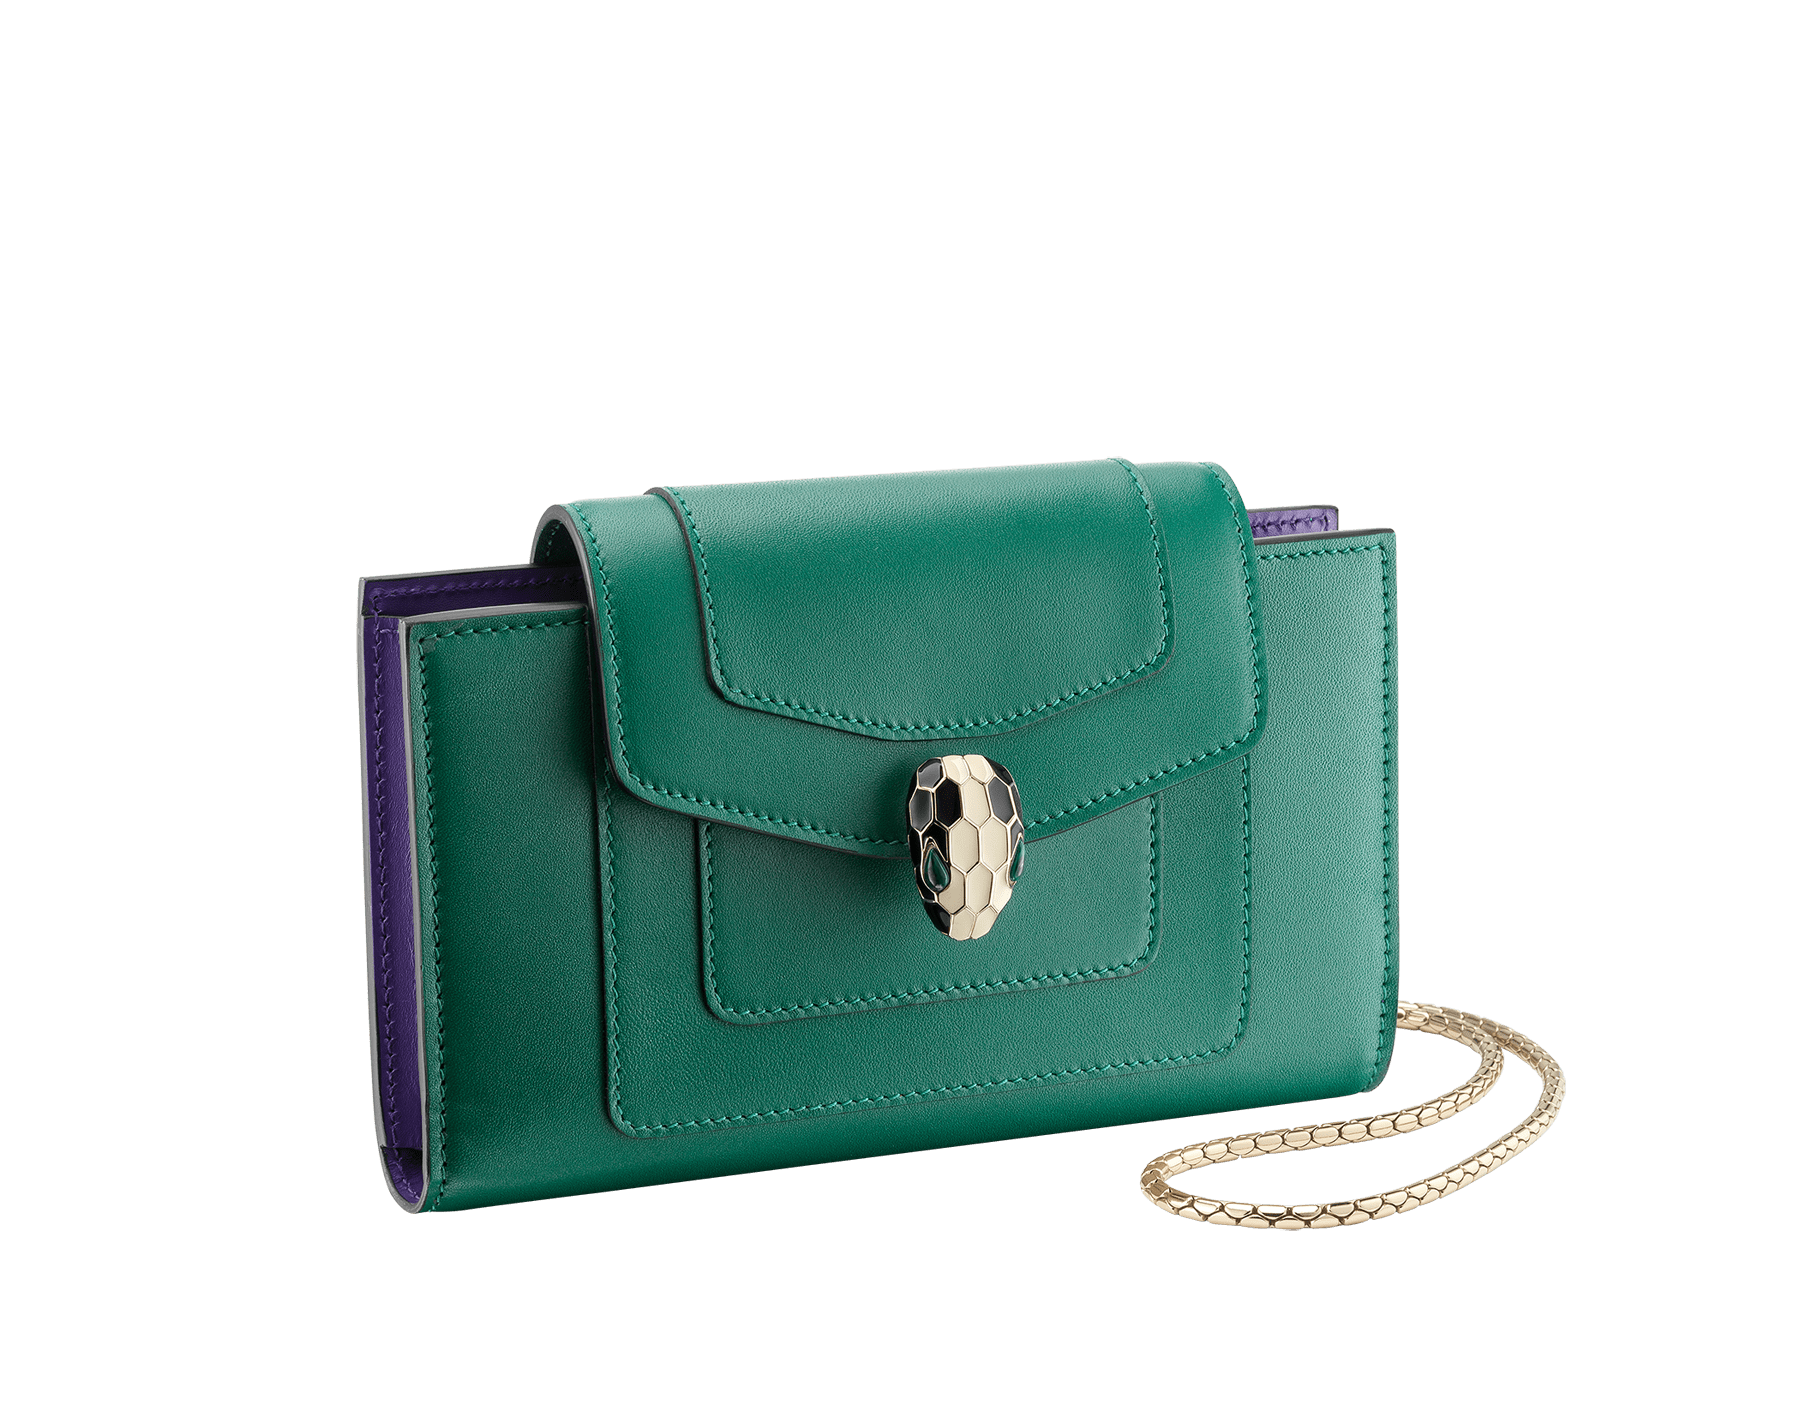 Techno-hybrid Serpenti Forever in flash amethyst calf leather, with black calf leather lining. Brass light gold plated Serpenti head stud closure in black and white enamel, with green enamel eyes. SEA-TECHNO-HYBRIDa image 1